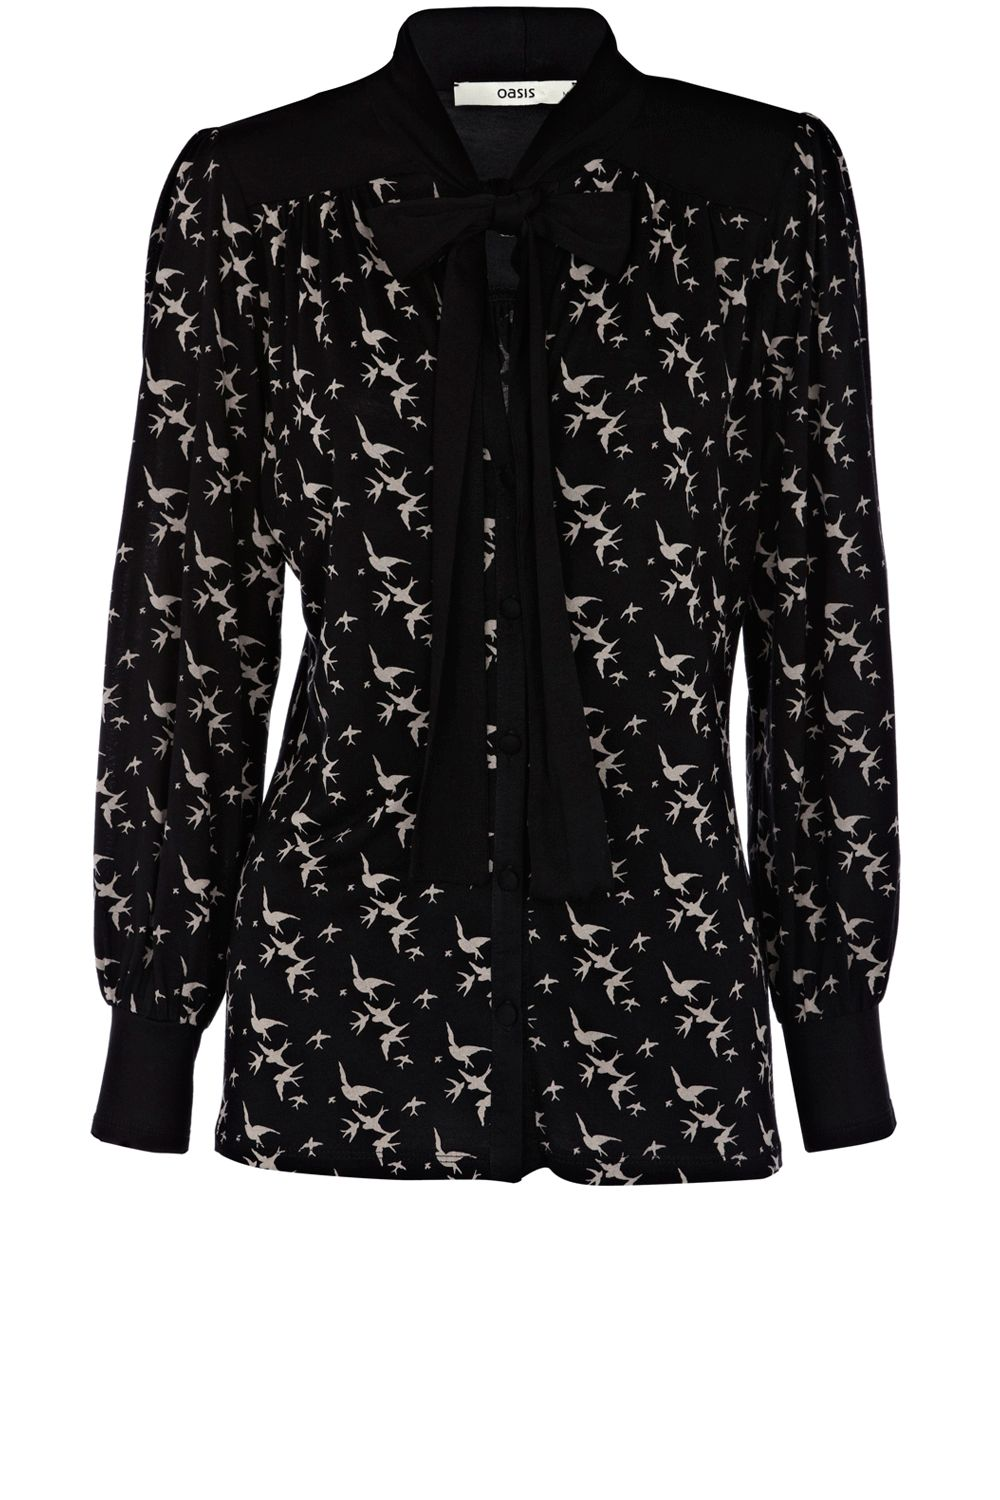 Oasis Bird print pussy bow blouse - Multi-Coloured product image